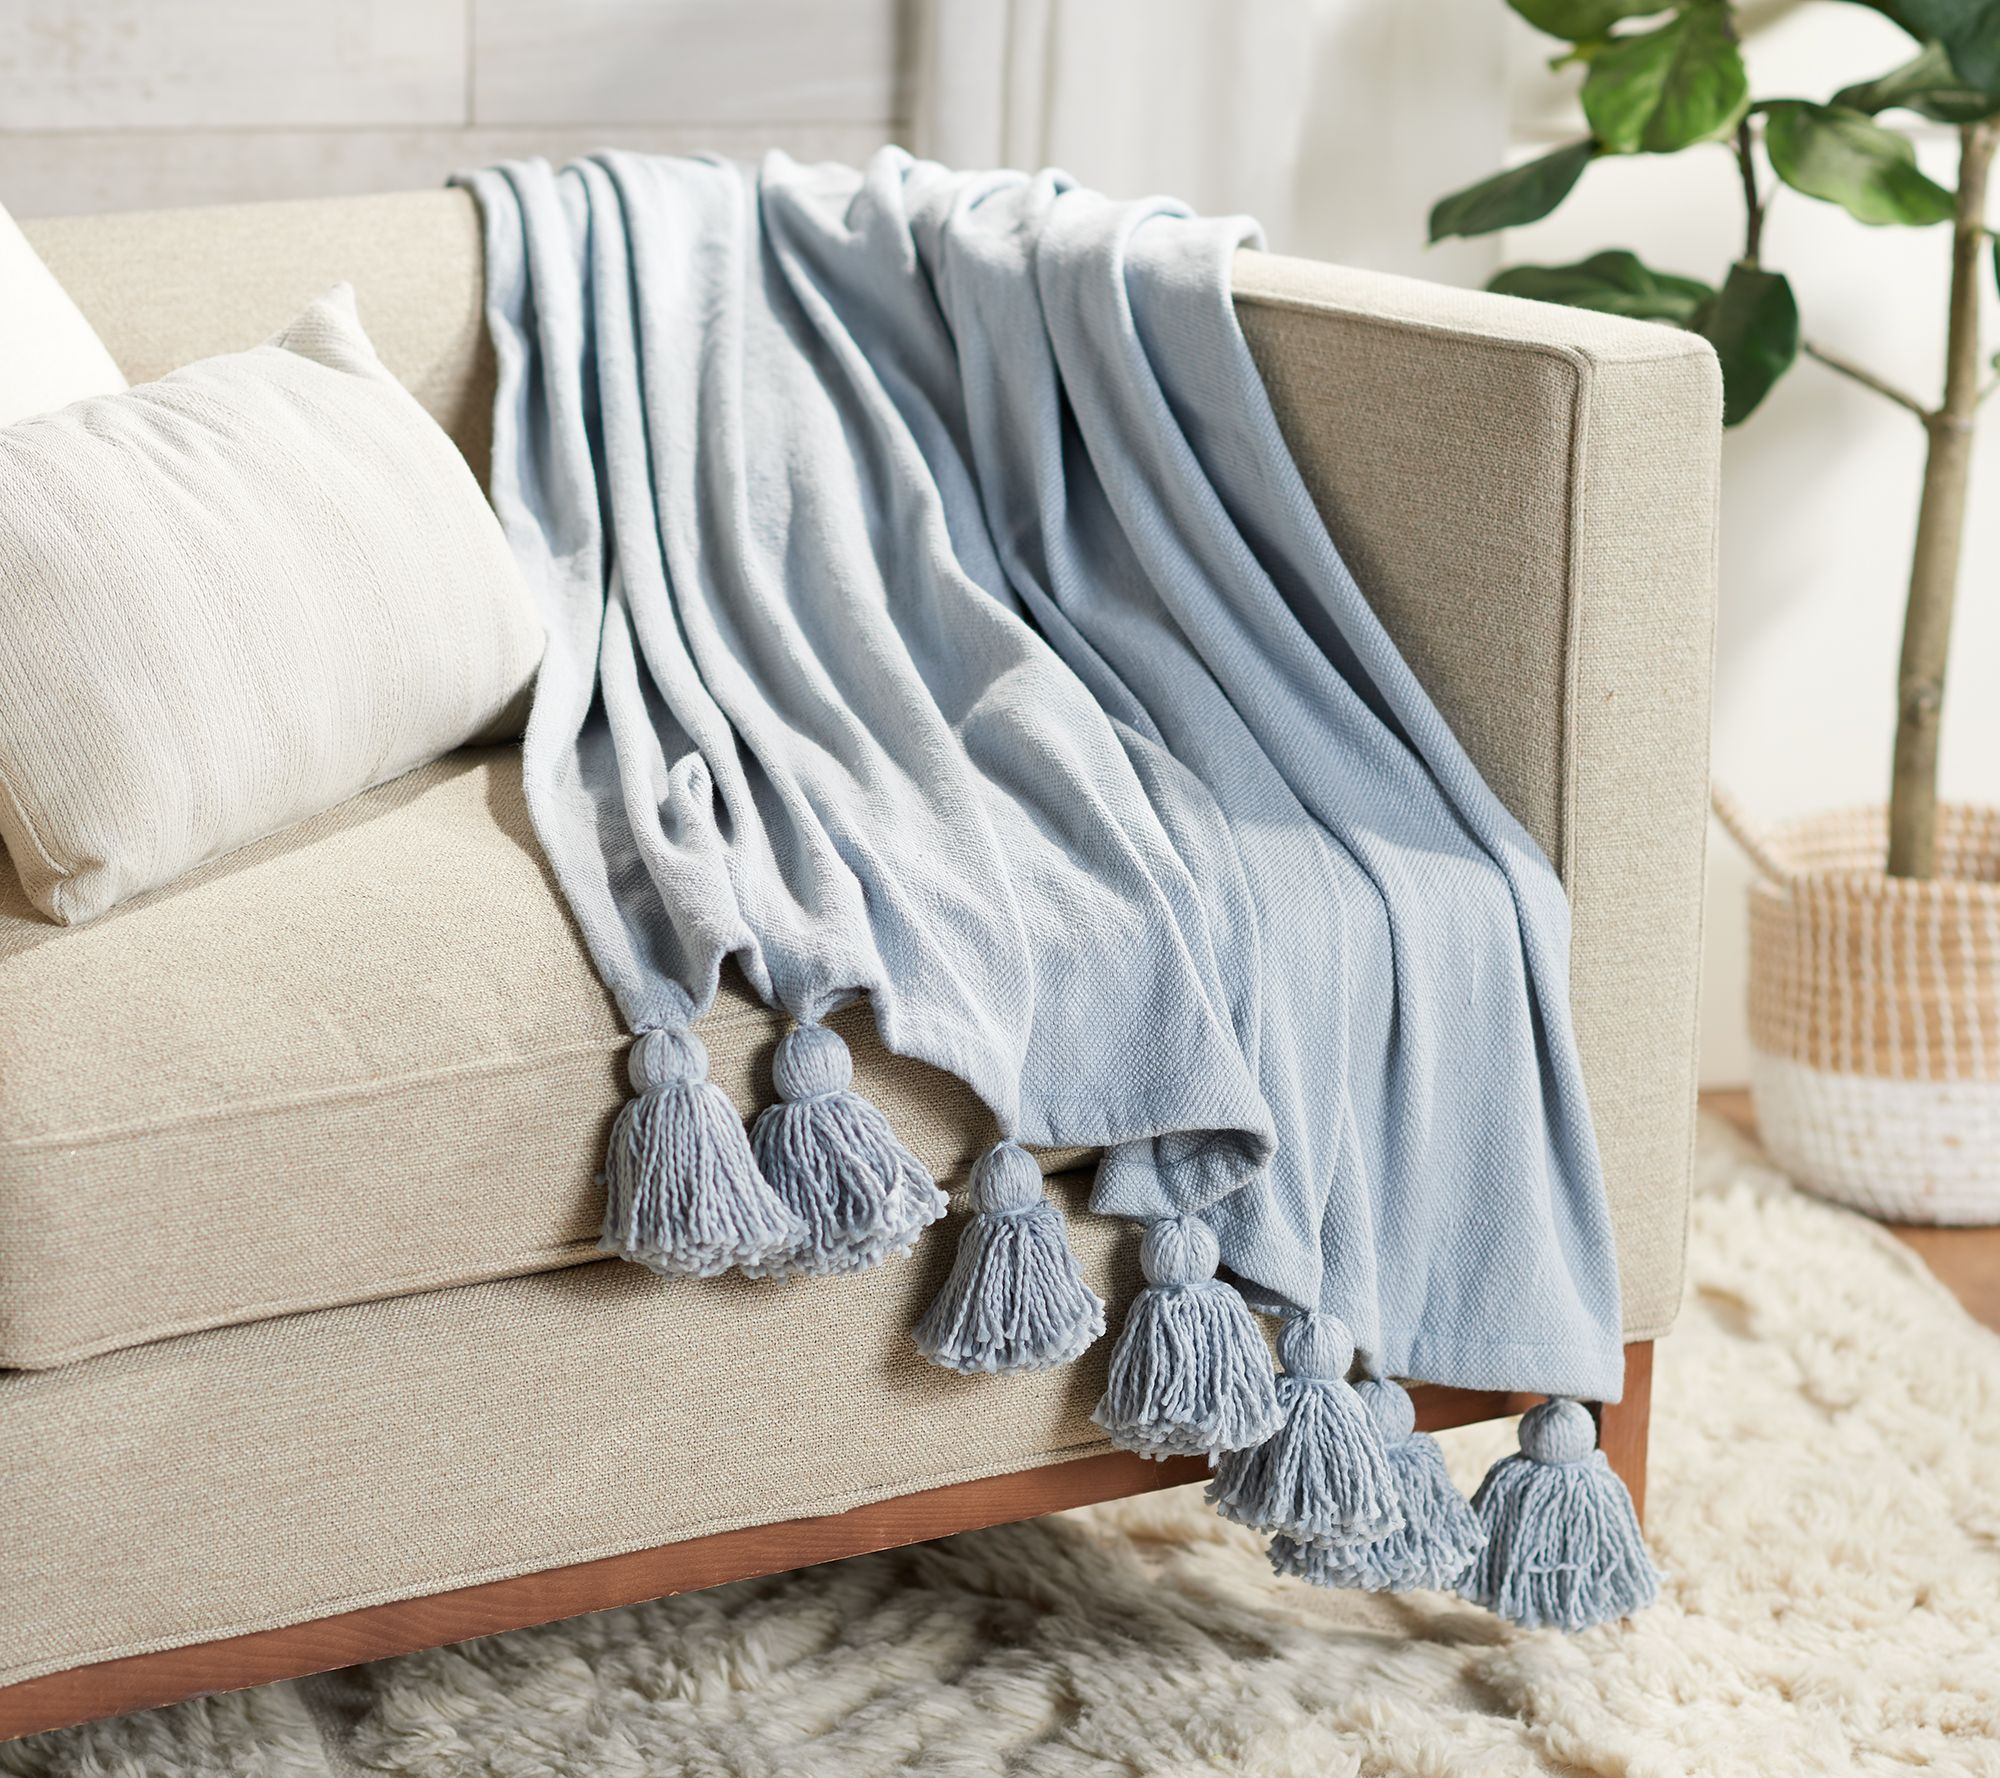 Pearl Blue Knit Throw 50 X 60 With Tassels By Lauren Mcbride Qvc Com In 2021 Blue Throw Blanket Knitted Throws Couch Throw Blanket